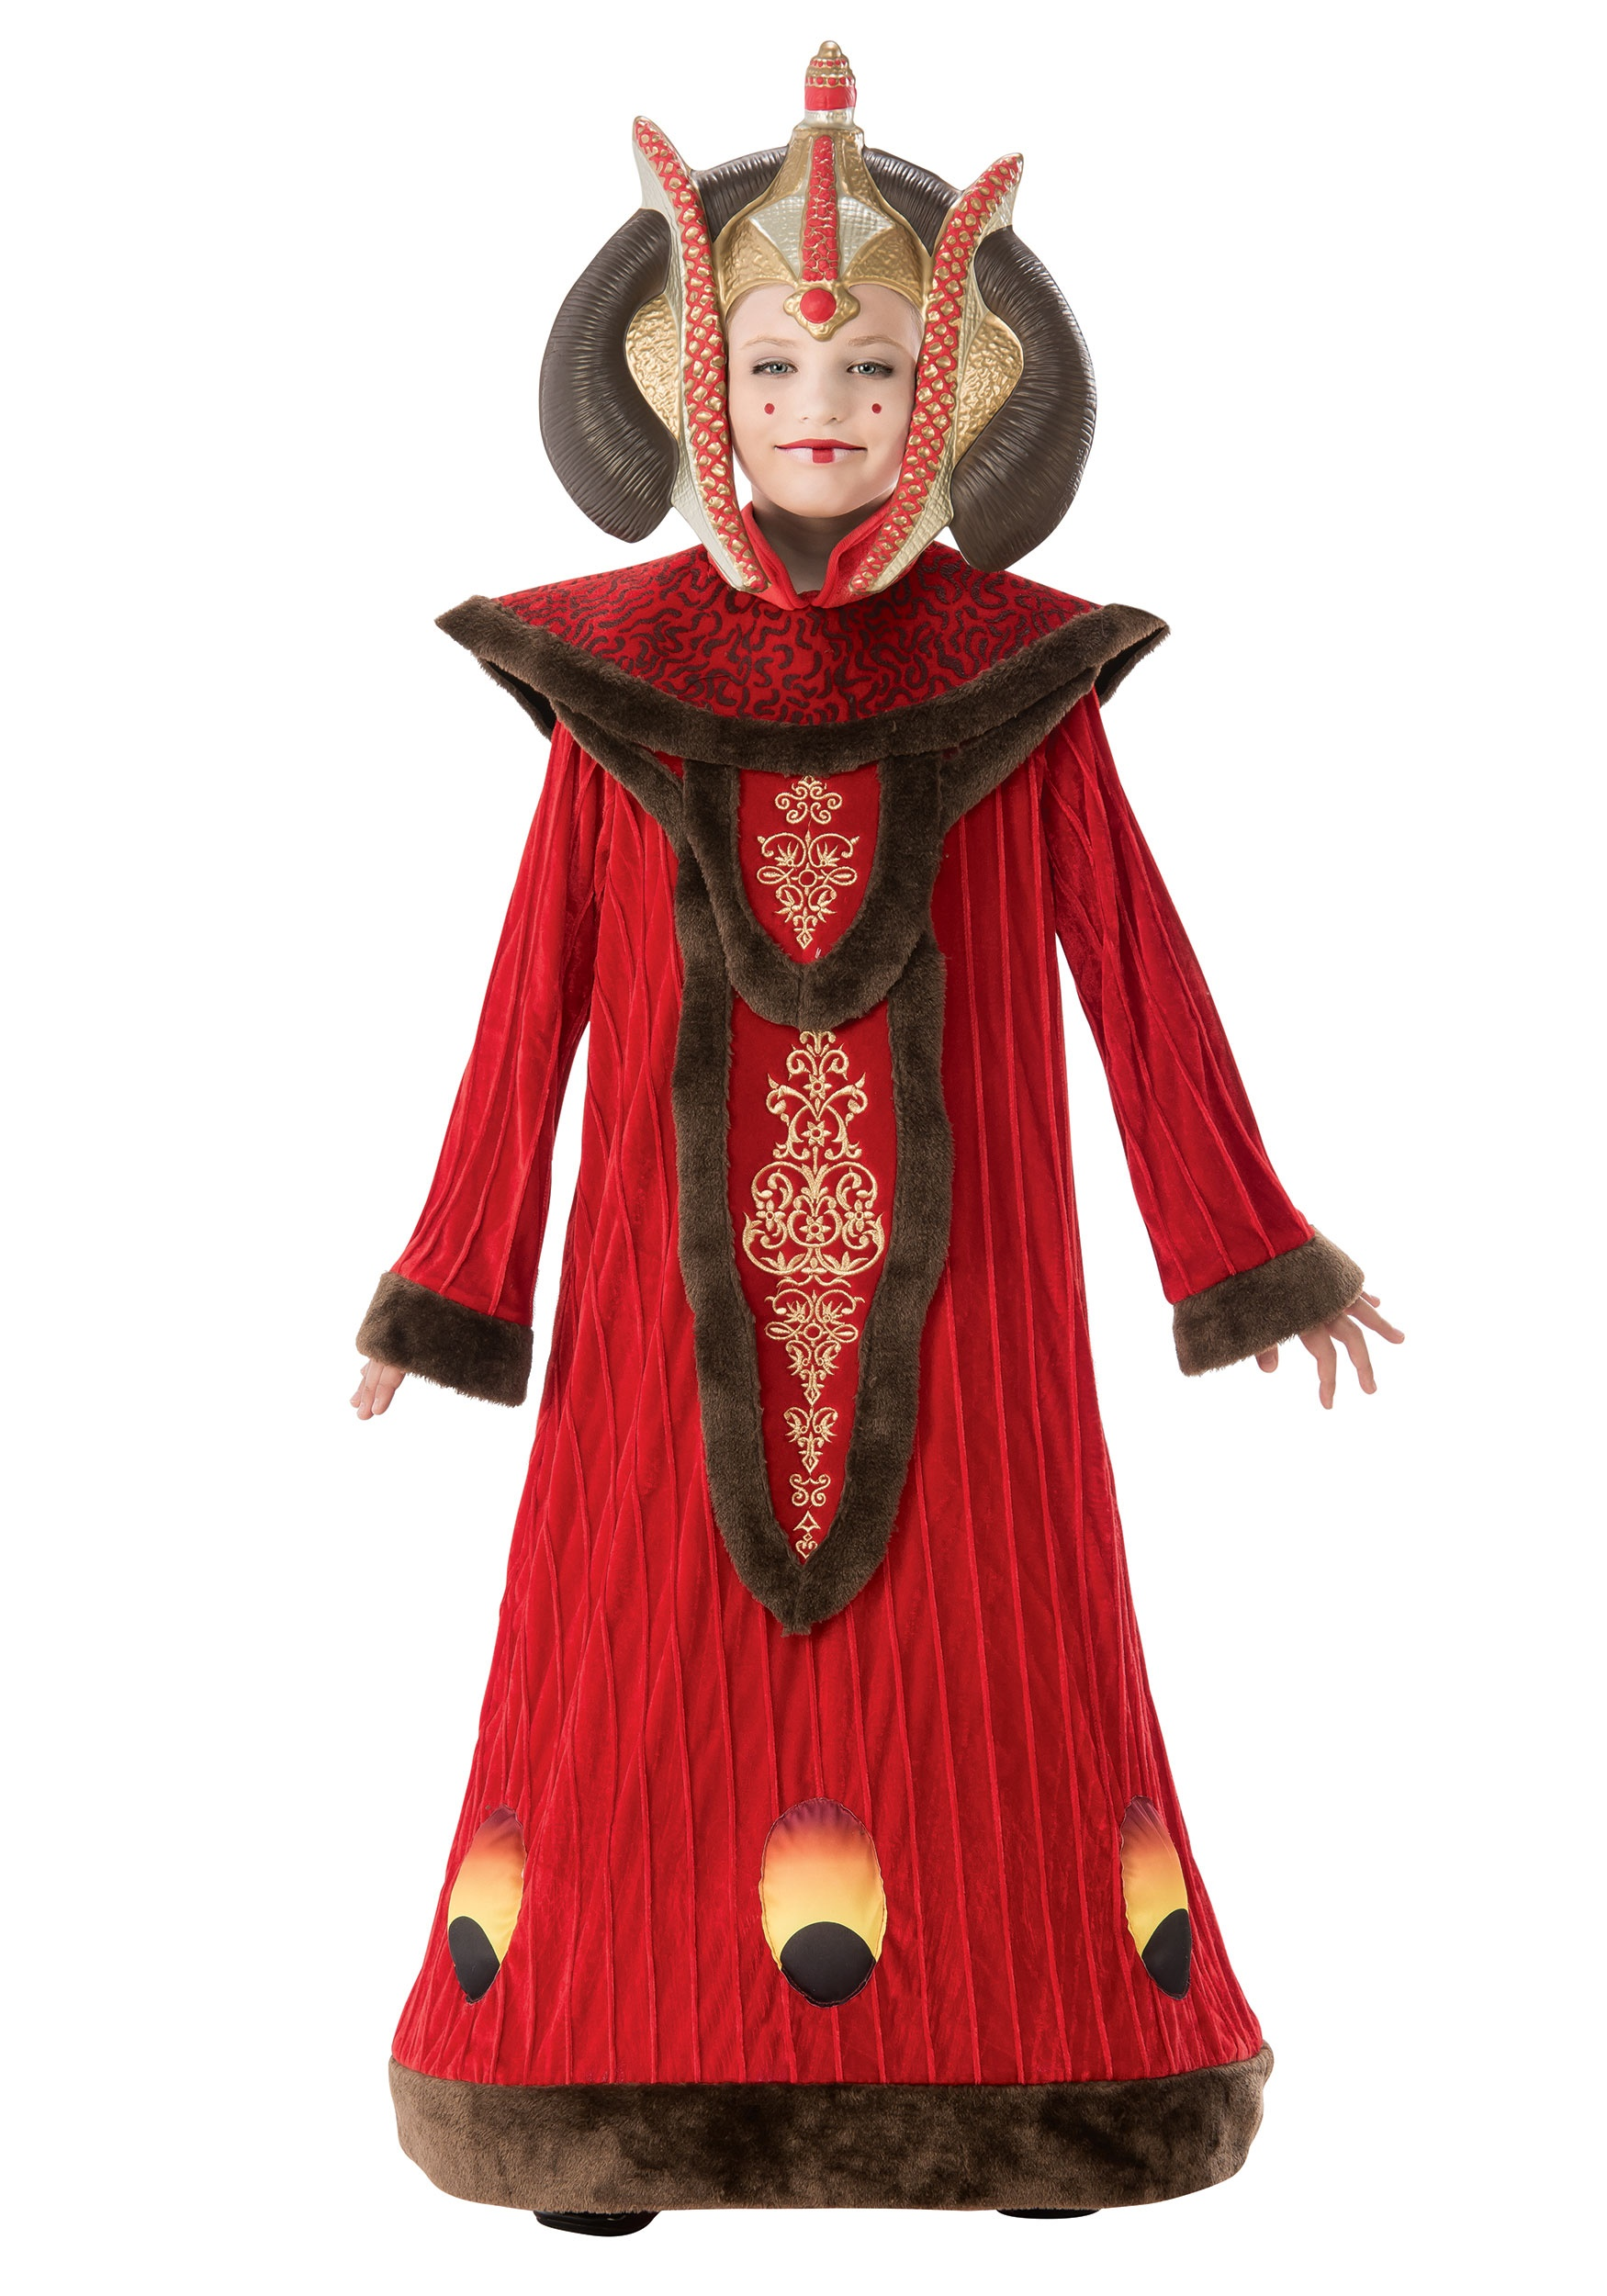 INOpets.com Anything for Pets Parents & Their Pets Star Wars Queen Amidala Costume for Girls